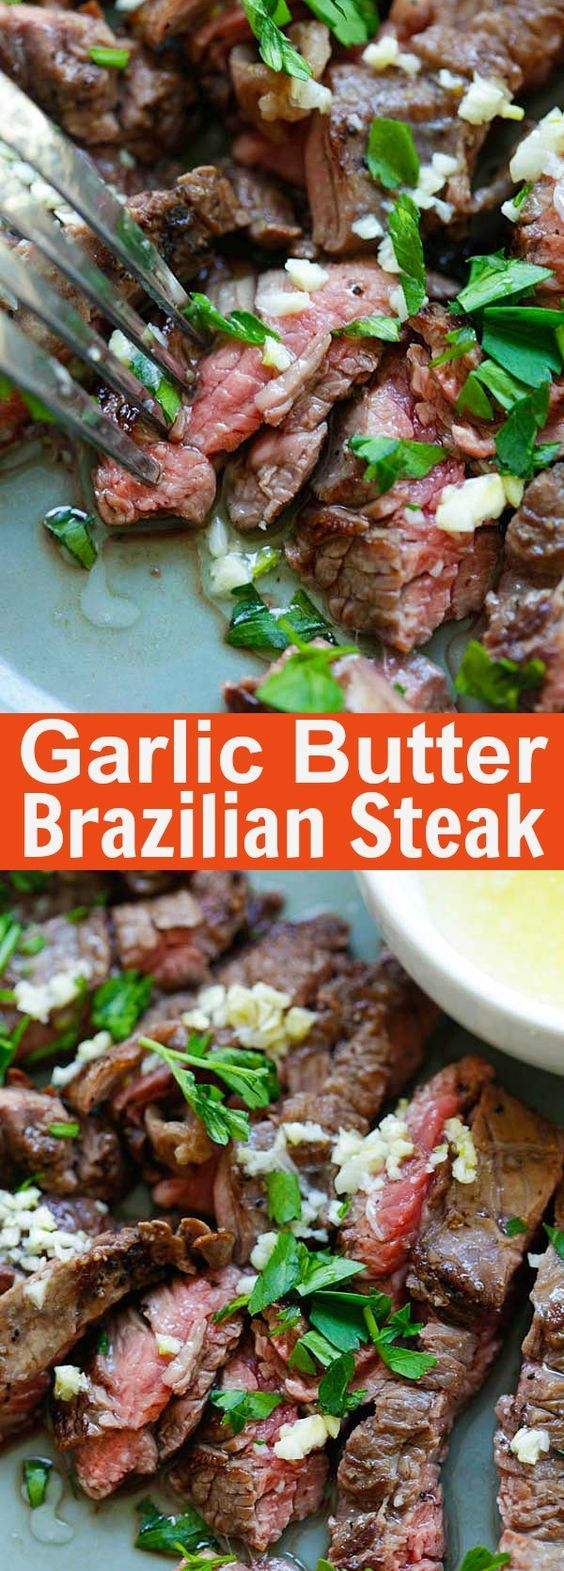 Garlic Butter Brazilian Steak Recipe